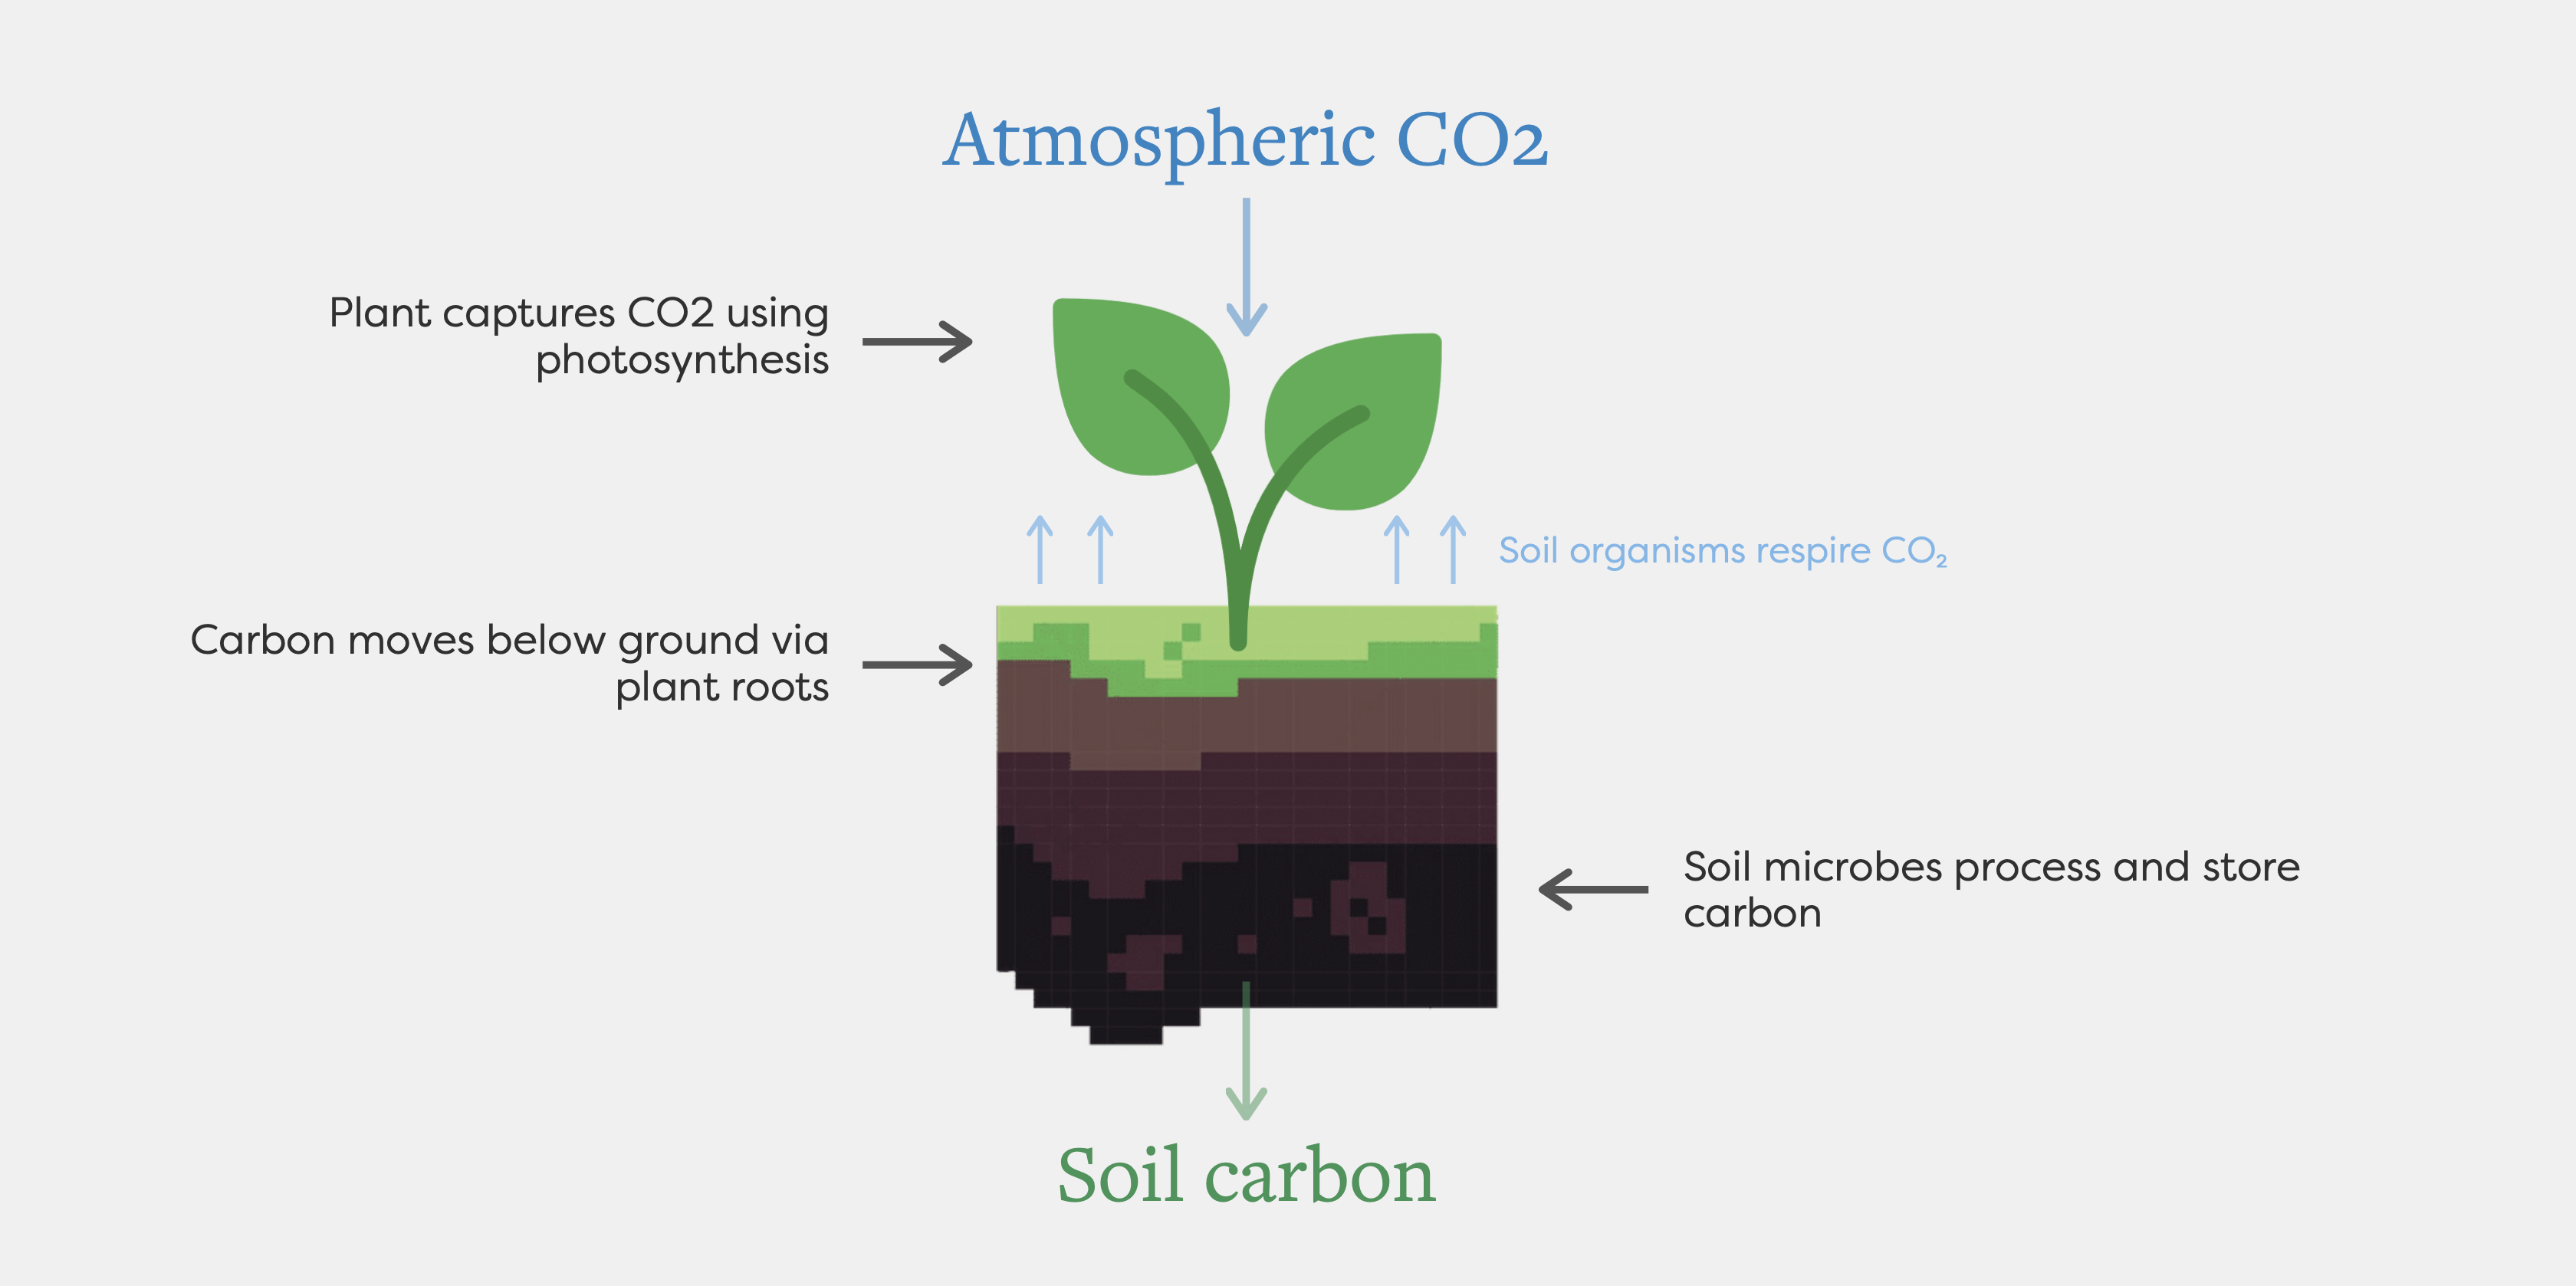 An infographic shows a plant in soil with labels describing how CO2 in the atmosphere enters the soil via roots and microbes